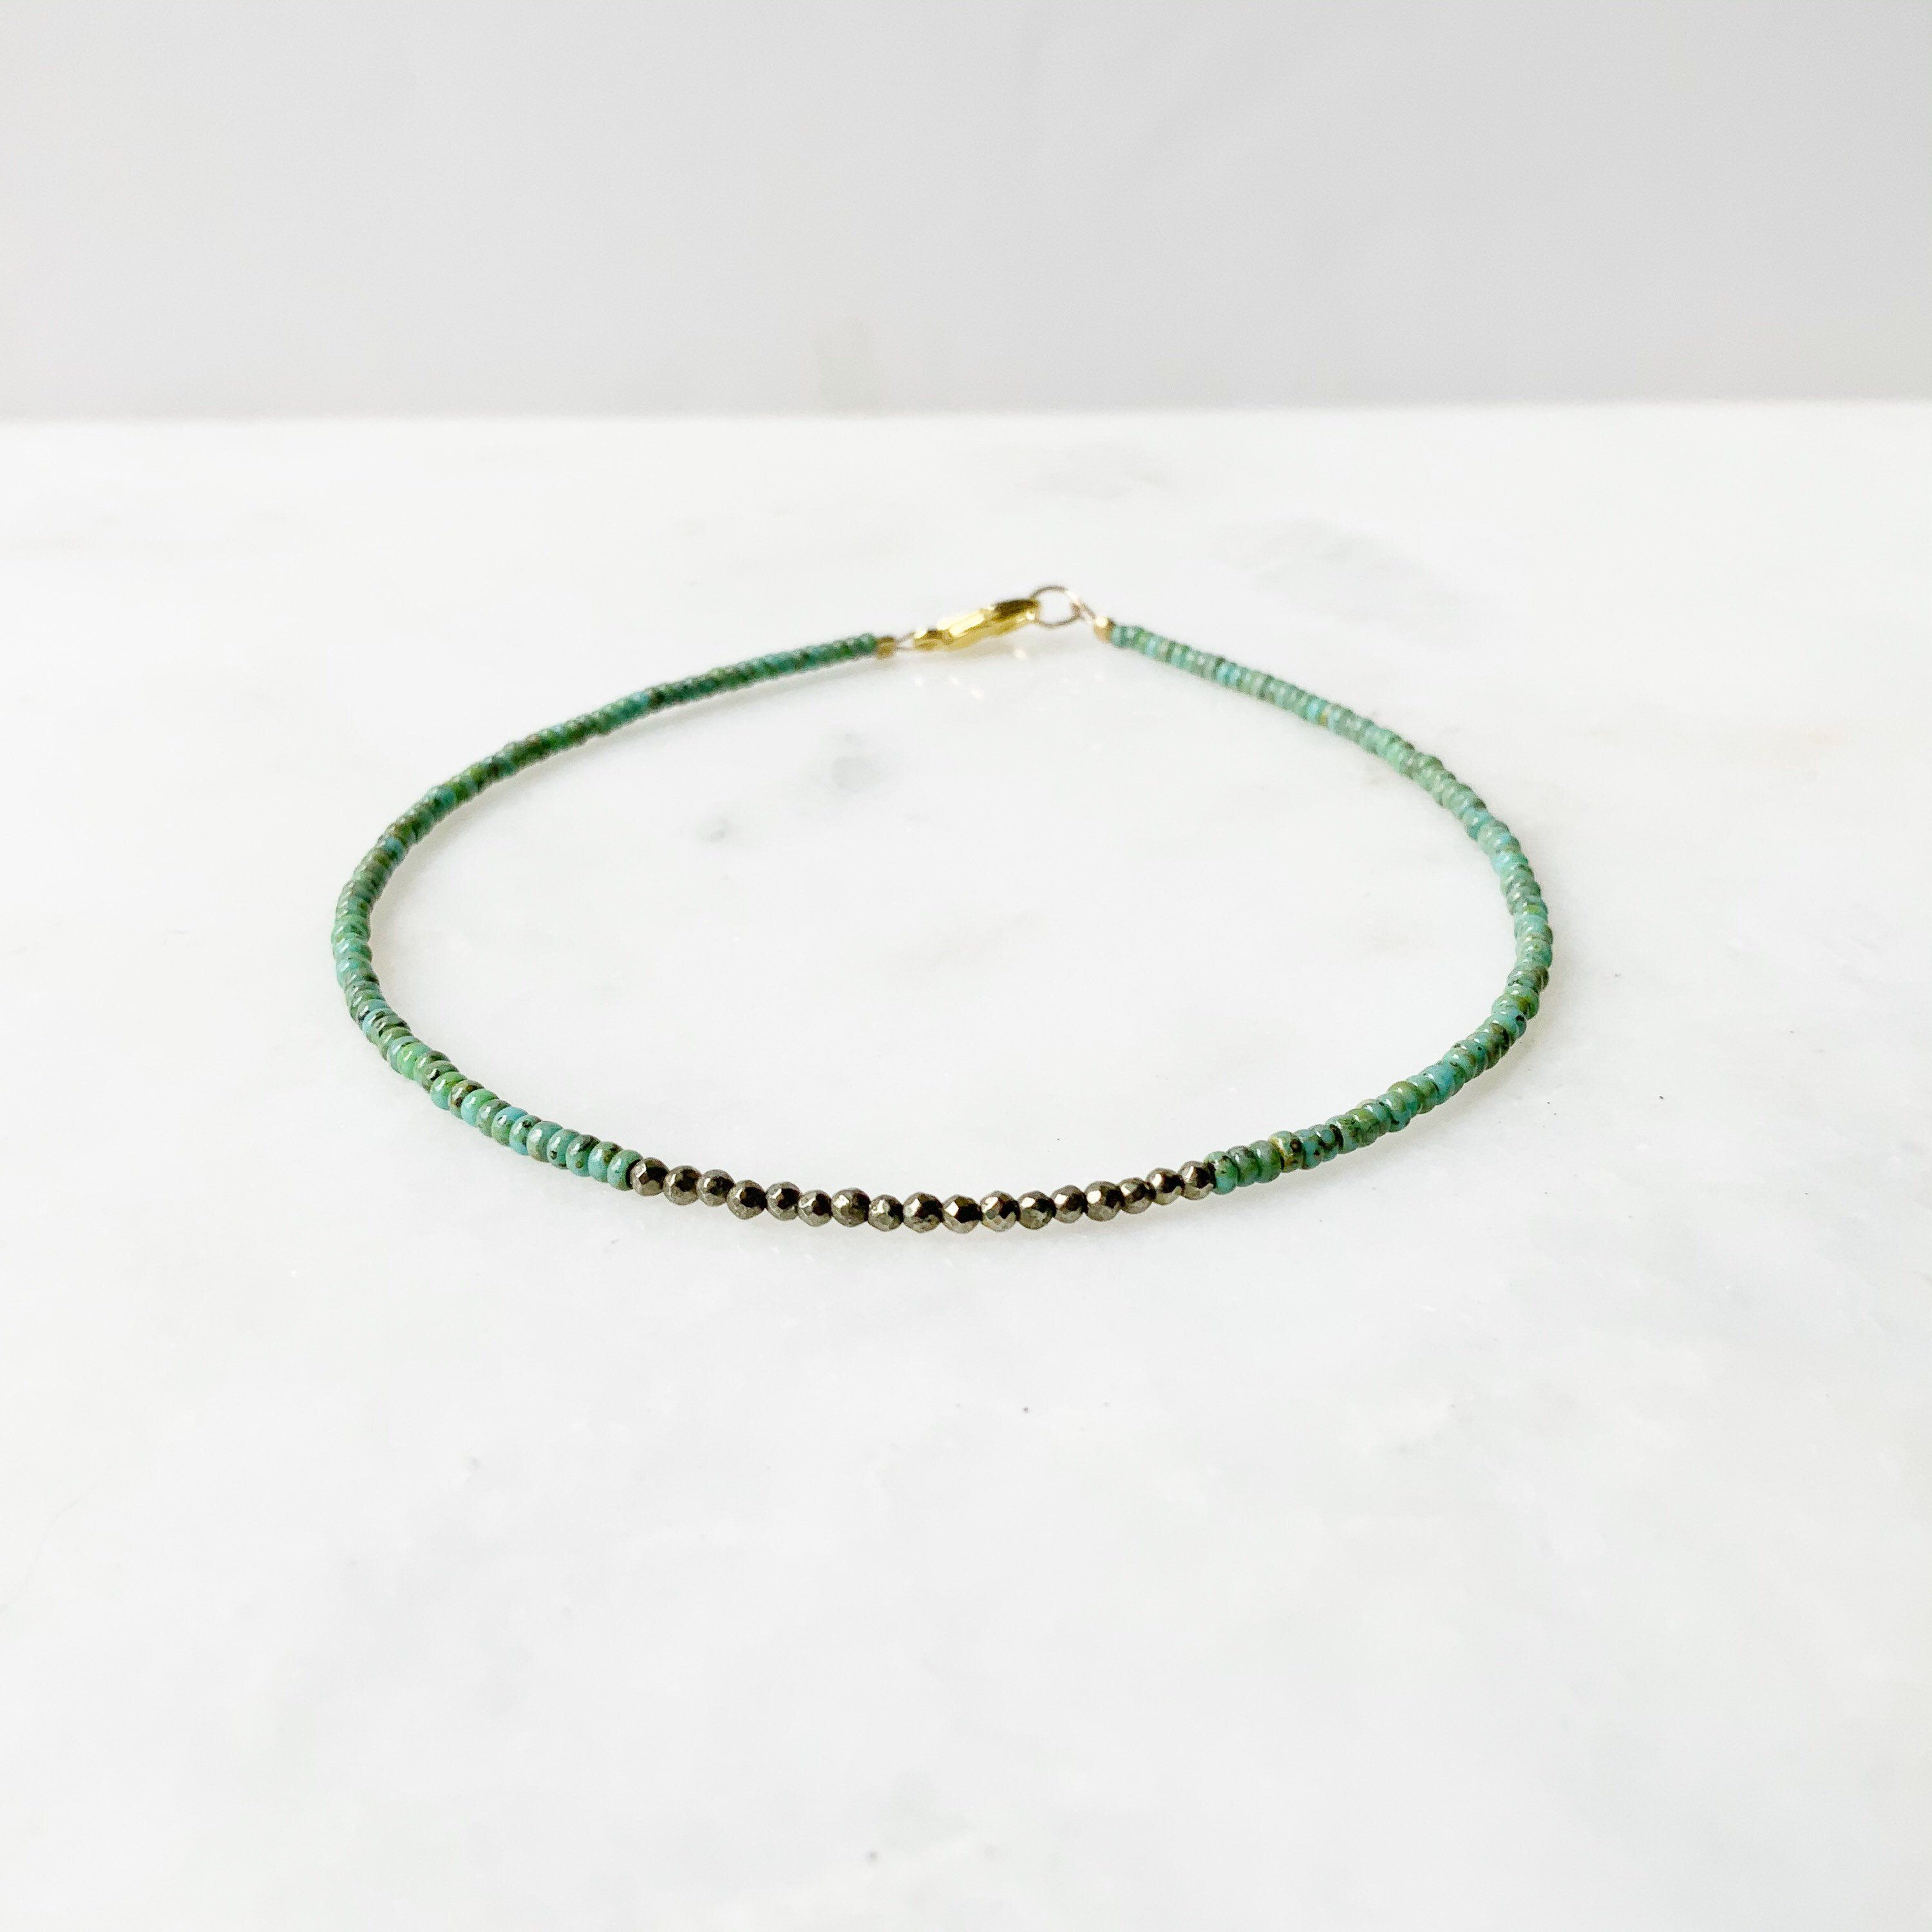 Photo of Women's Green And Pyrite Anklet, Summer Beach Anklet For Women, Delicate Dainty Anklet, Beaded Crystal Jewelry, Boho Ankle Bracelet